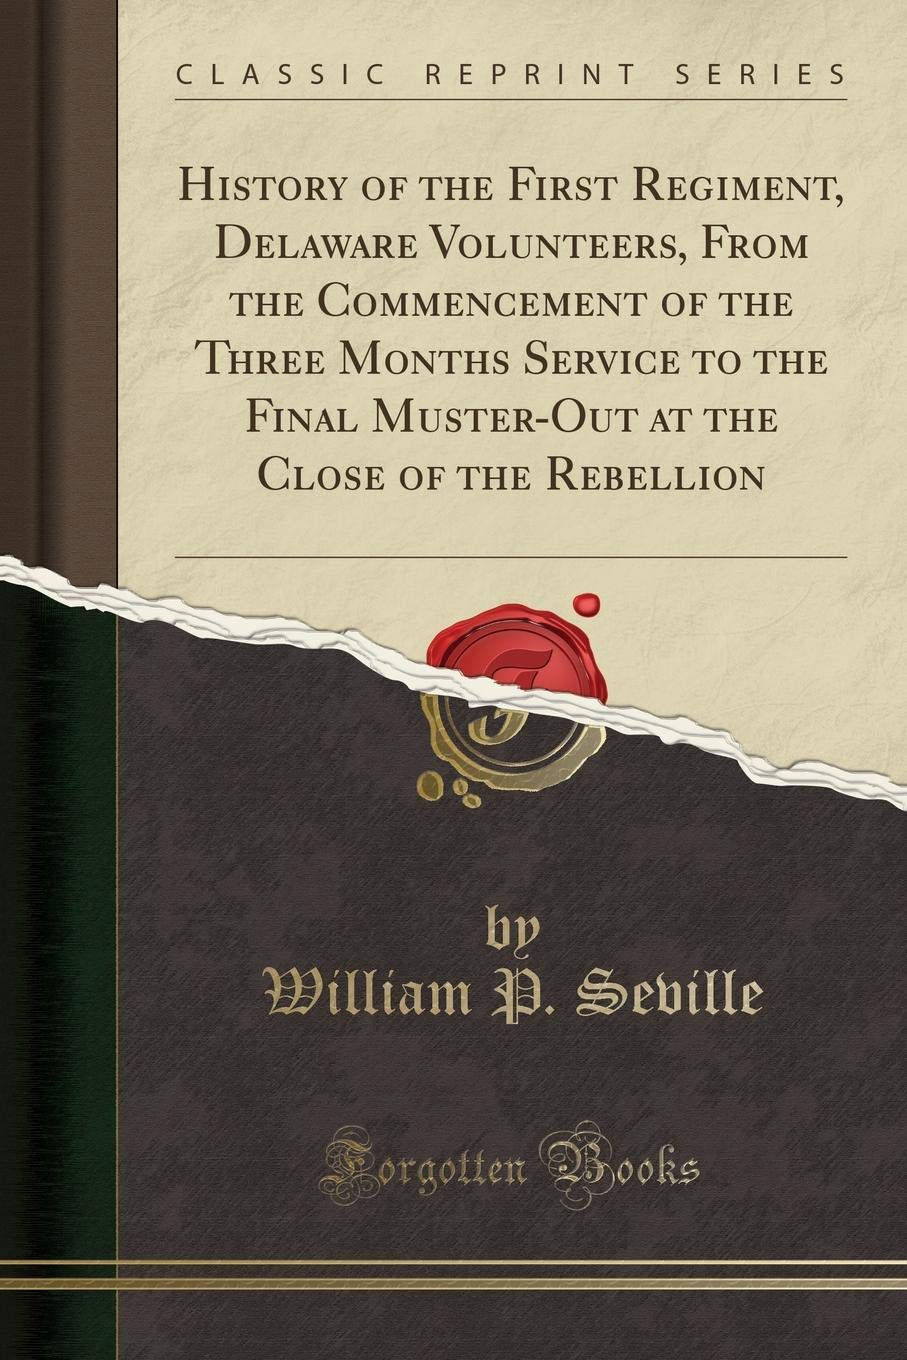 Download History of the First Regiment, Delaware Volunteers, From the Commencement of the Three Months Service to the Final Muster-Out at the Close of the Rebellion (Classic Reprint) pdf epub